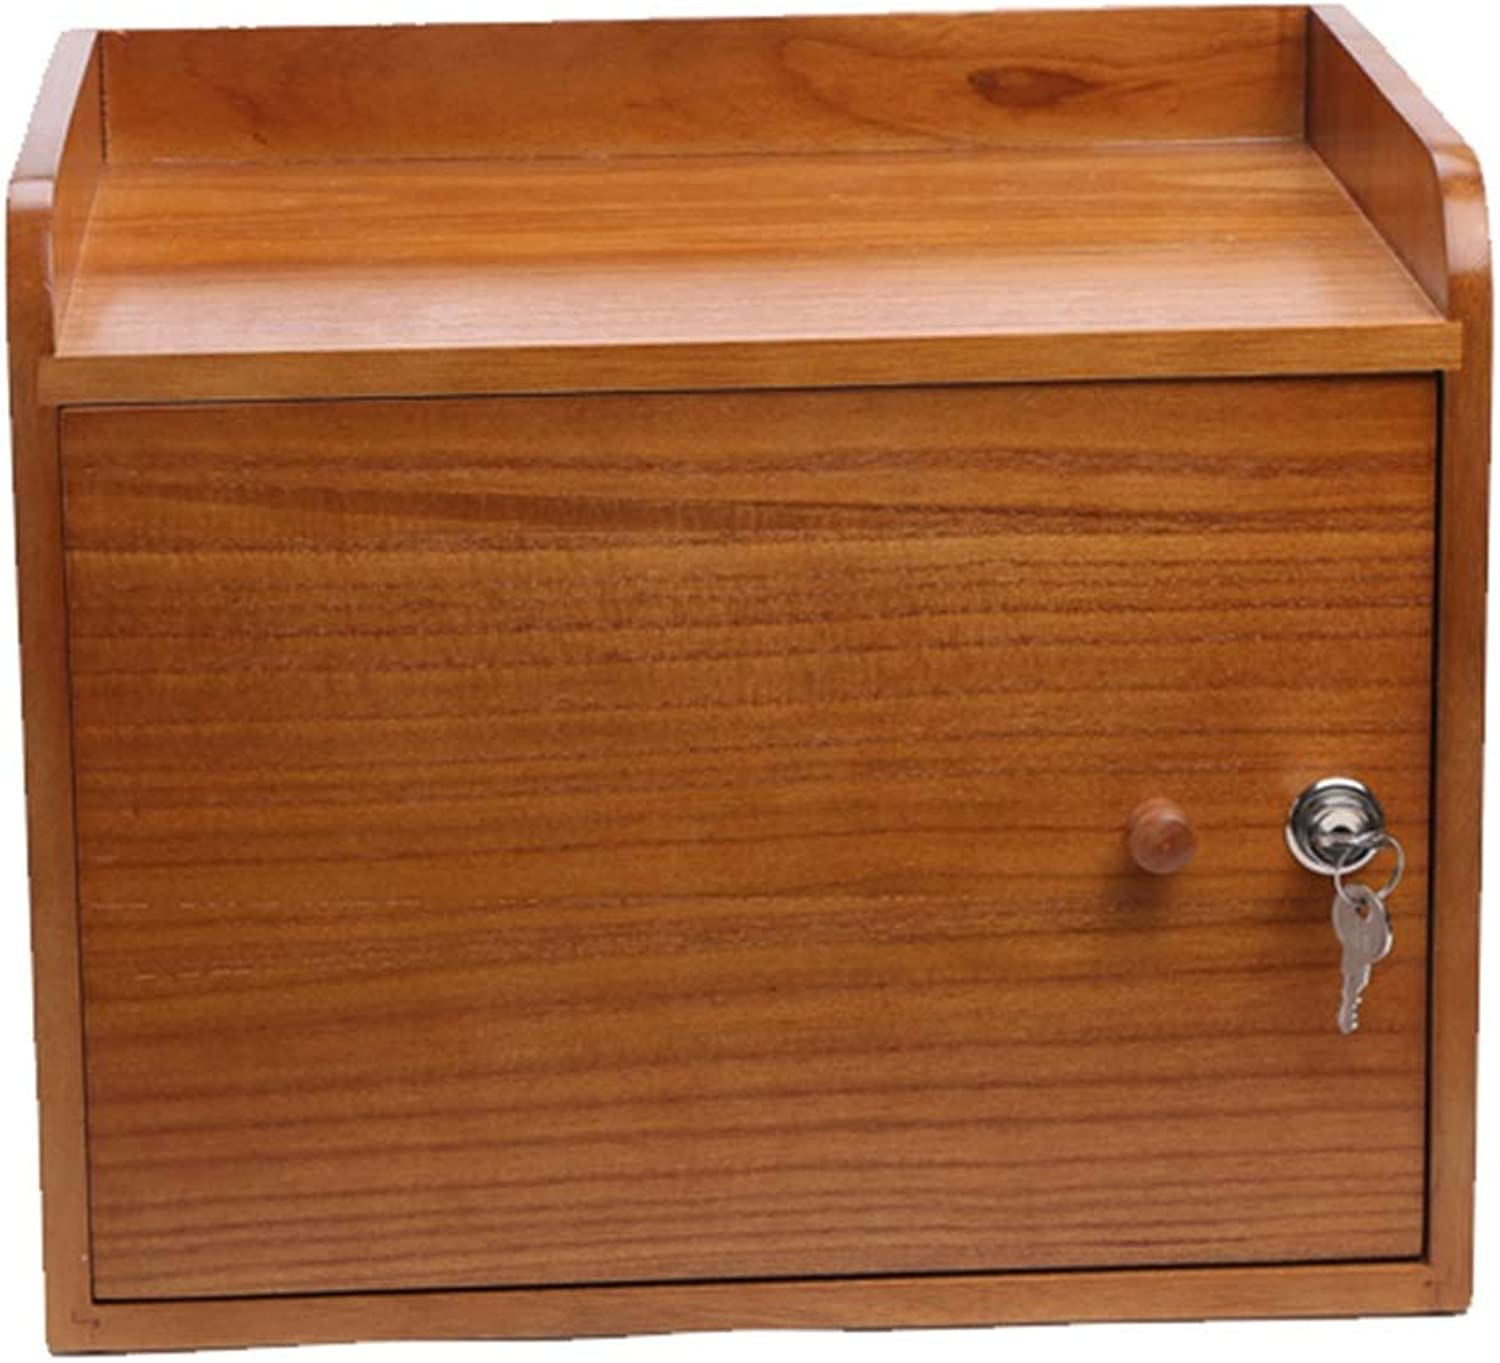 Cabinets File Cabinet Office Supplies Storage Box Desktop Solid Wood Storage Cabinet with Lock Simple Creative Rack File Information File Cabinets (color   Wood, Size   38  27  30cm)